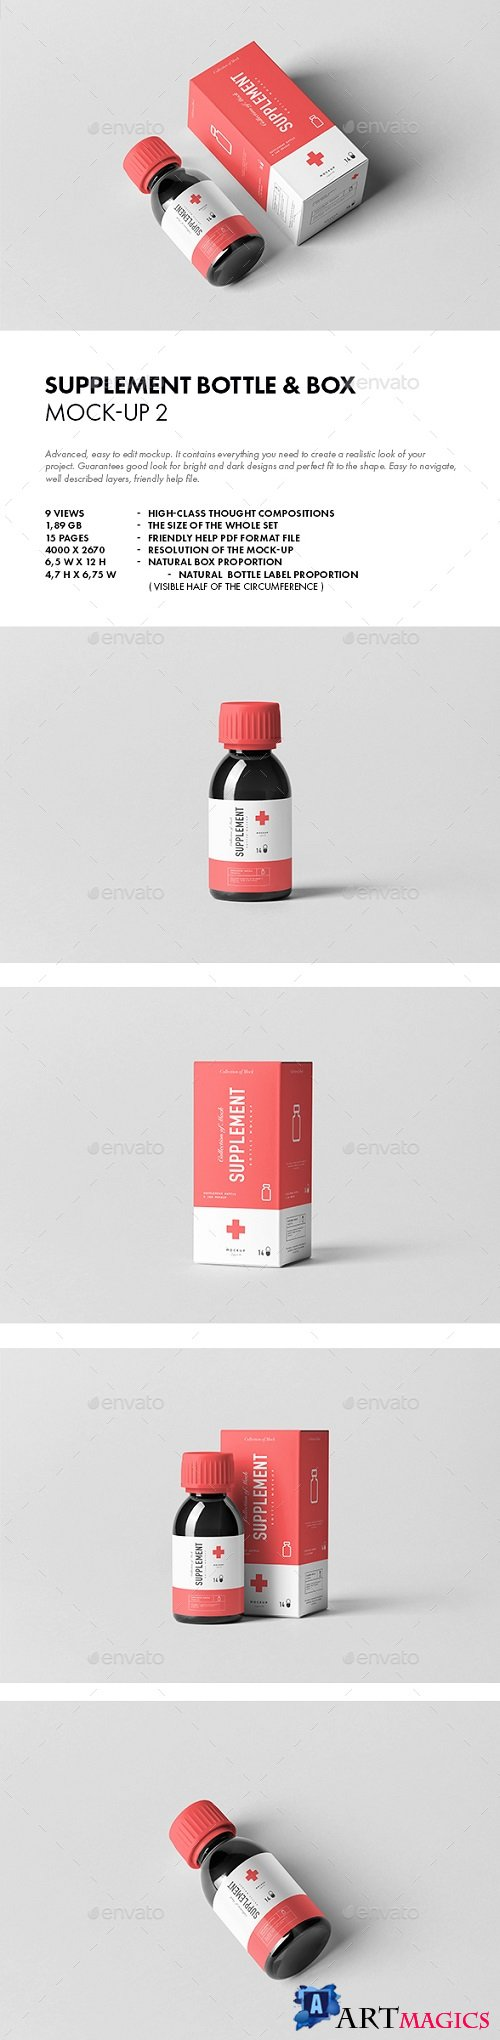 Supplement Bottle & Box Mock-up 2 - 21082382